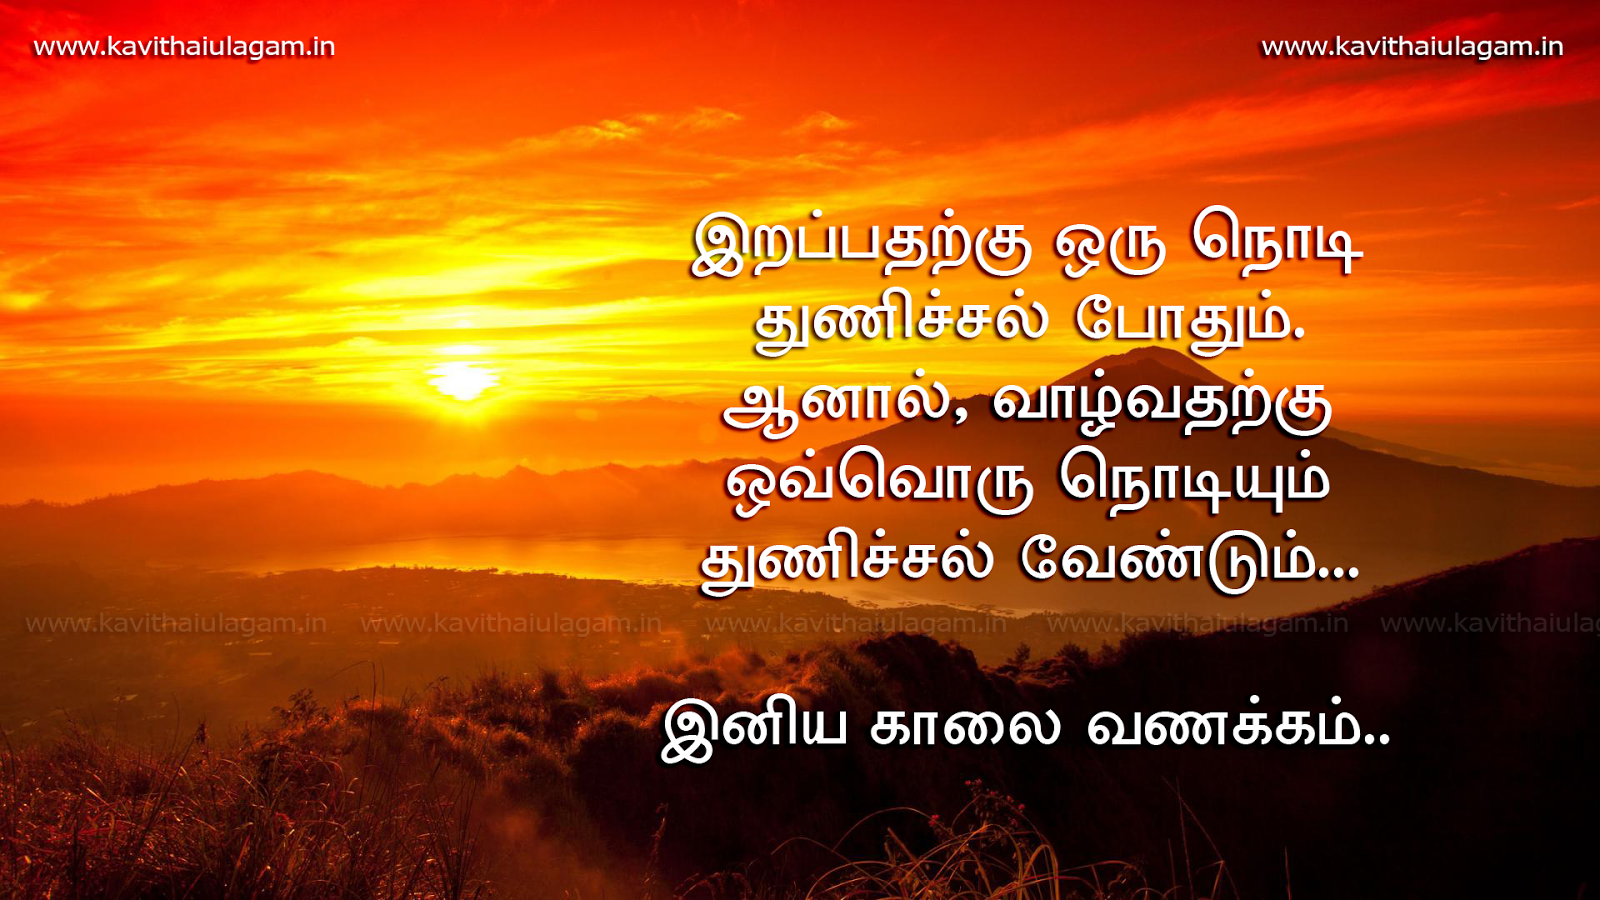 Good Morning Kavithai Images Pictures Wishes In Tamil Tamil Kavithai Kavithaigal Ulagam Good Morning Morning Pictures Morning